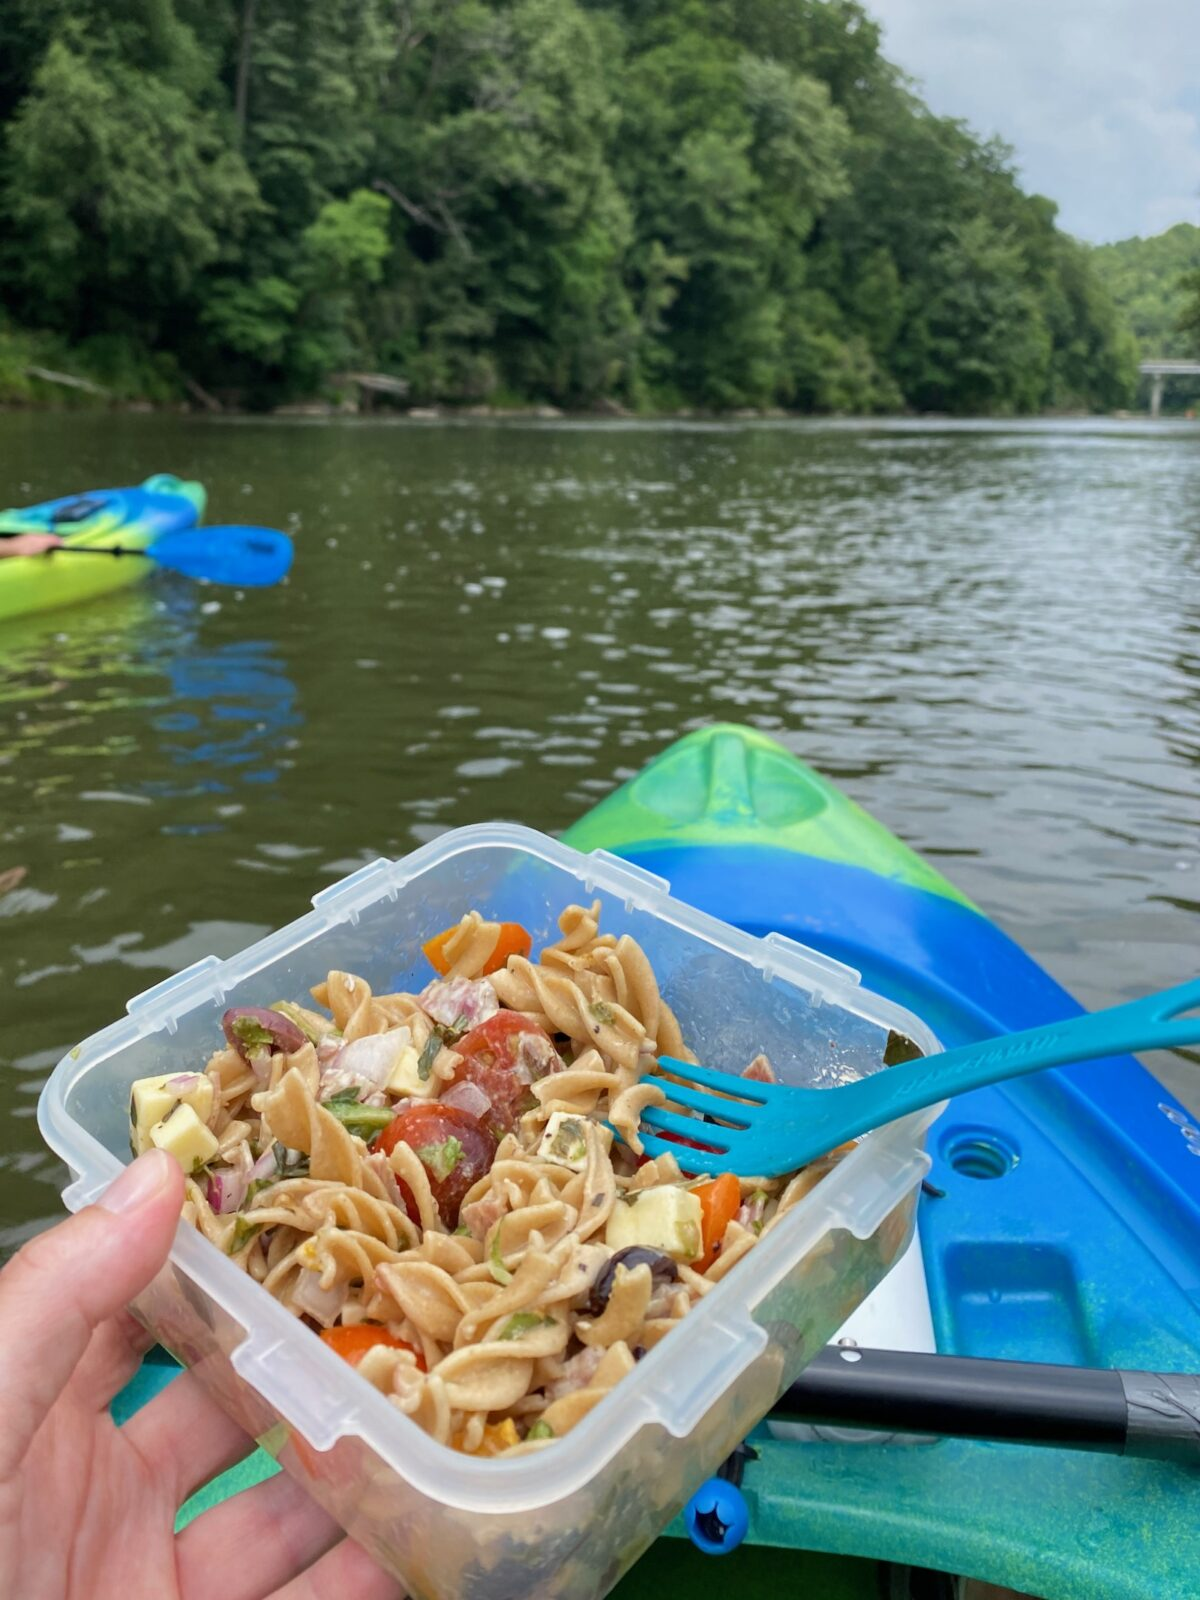 Holding a container with pasta salad while sitting on a kayak on the water from the perspective of a person.